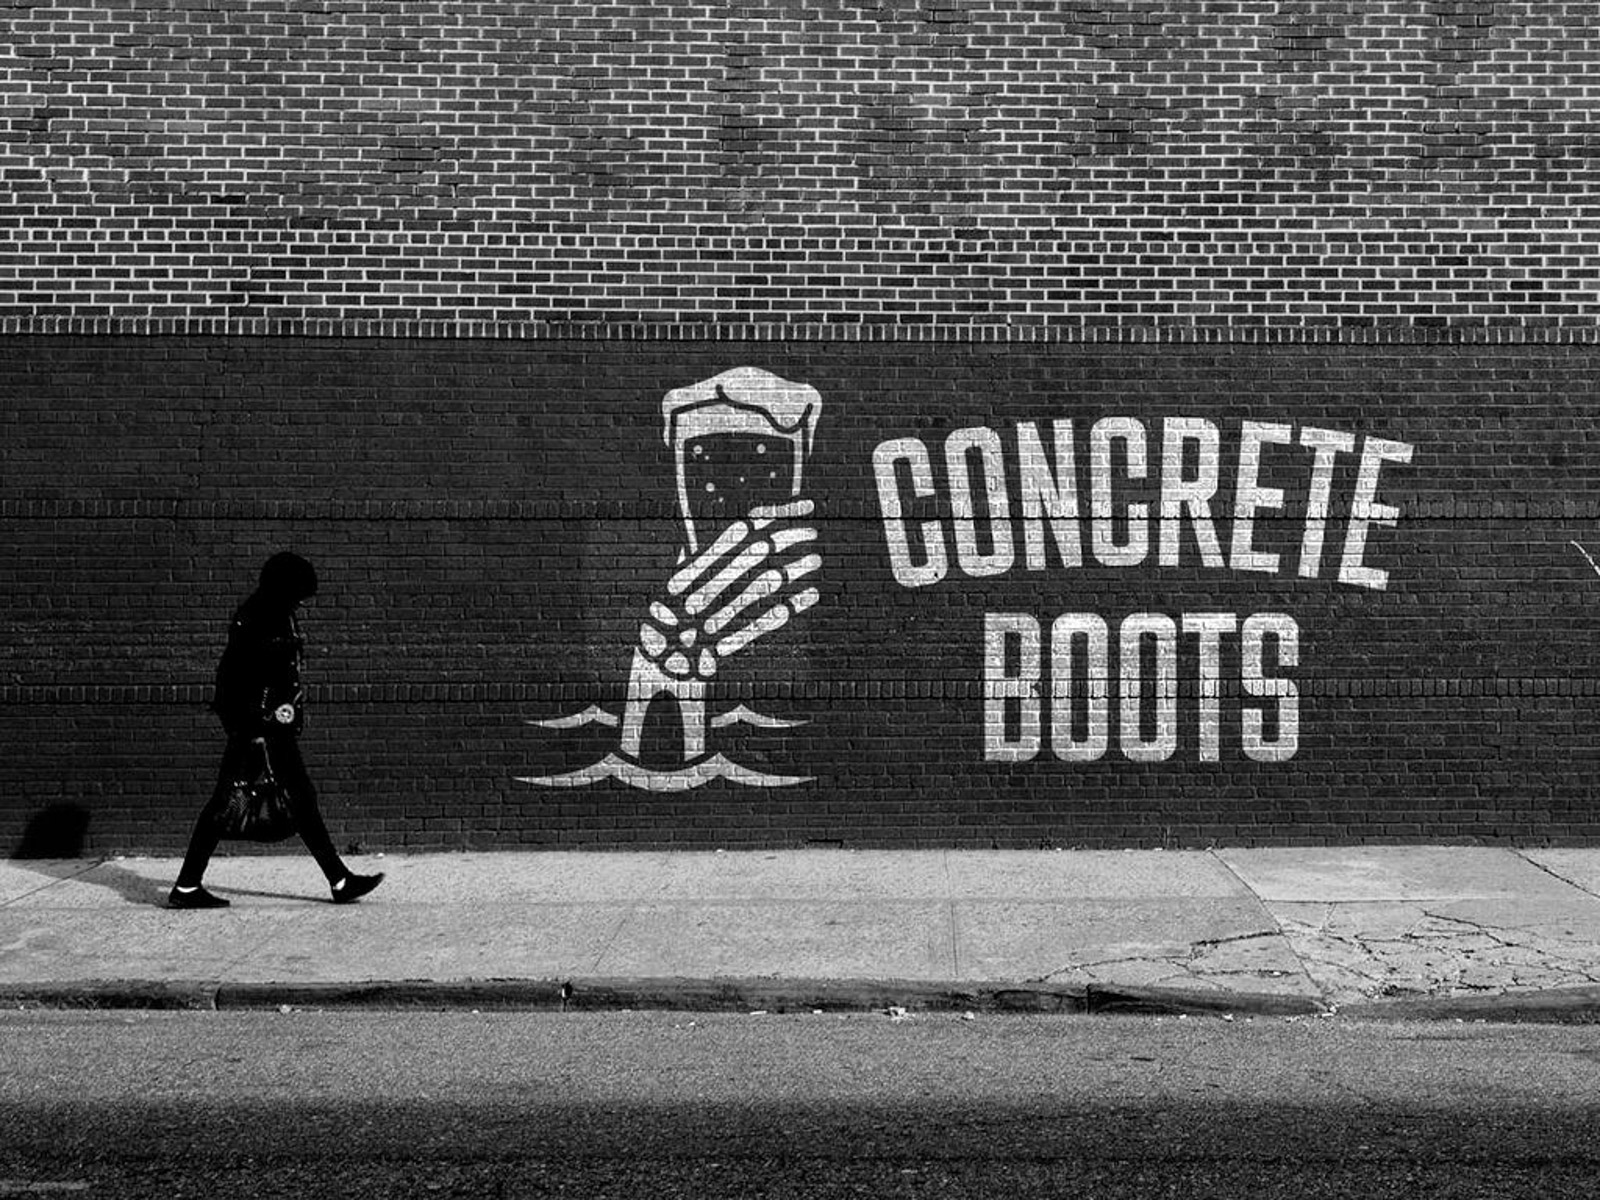 Image of Concrete Boots Bar outside